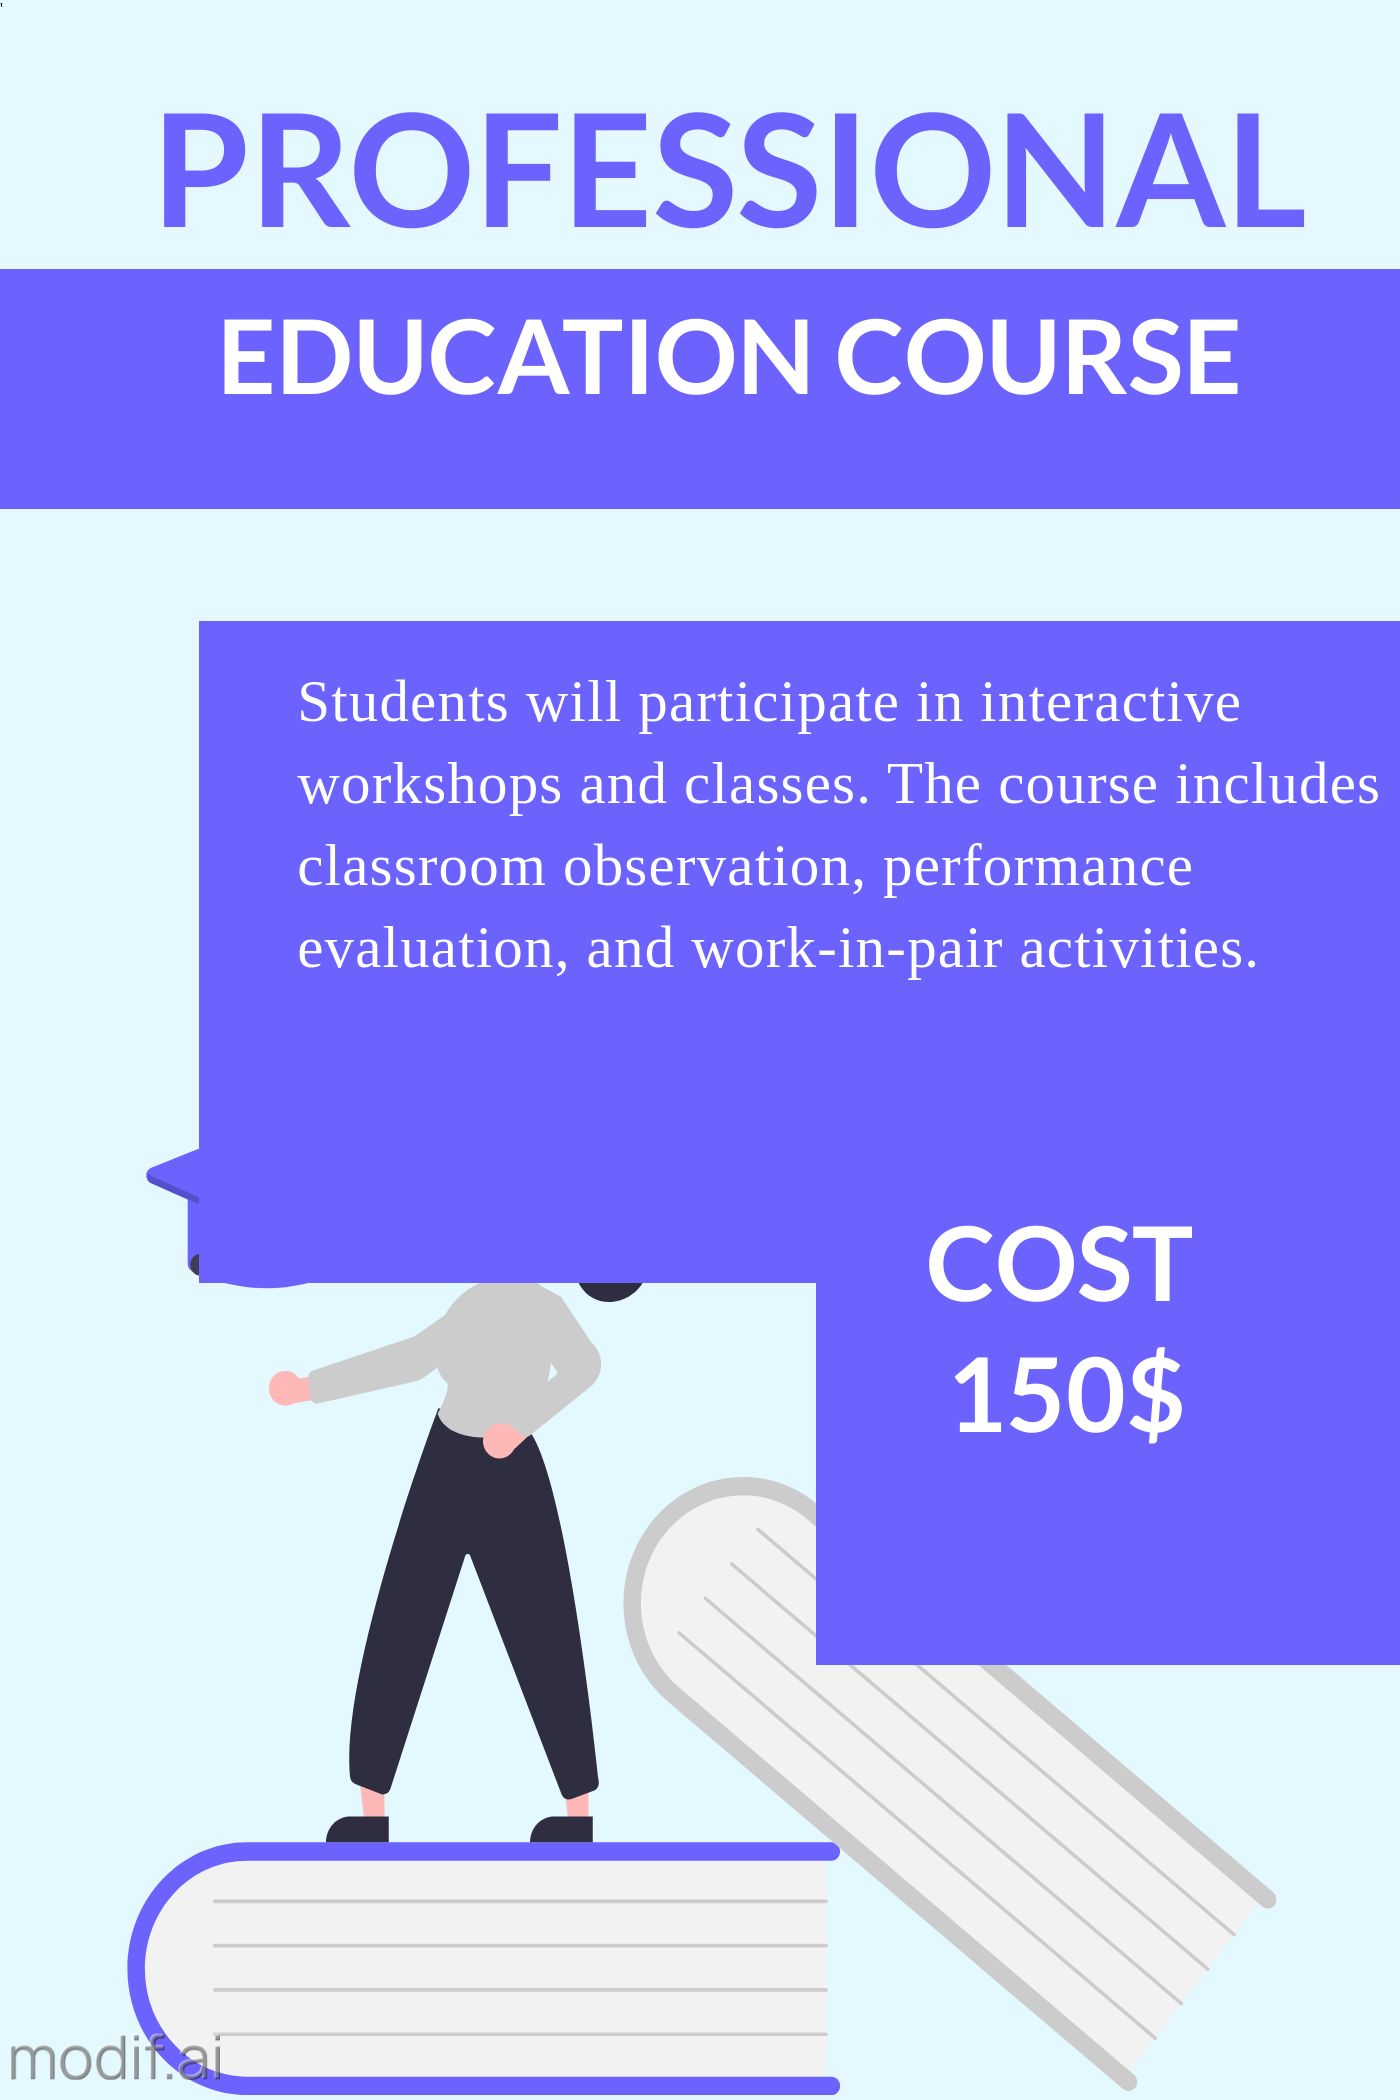 Professional Education Course Template